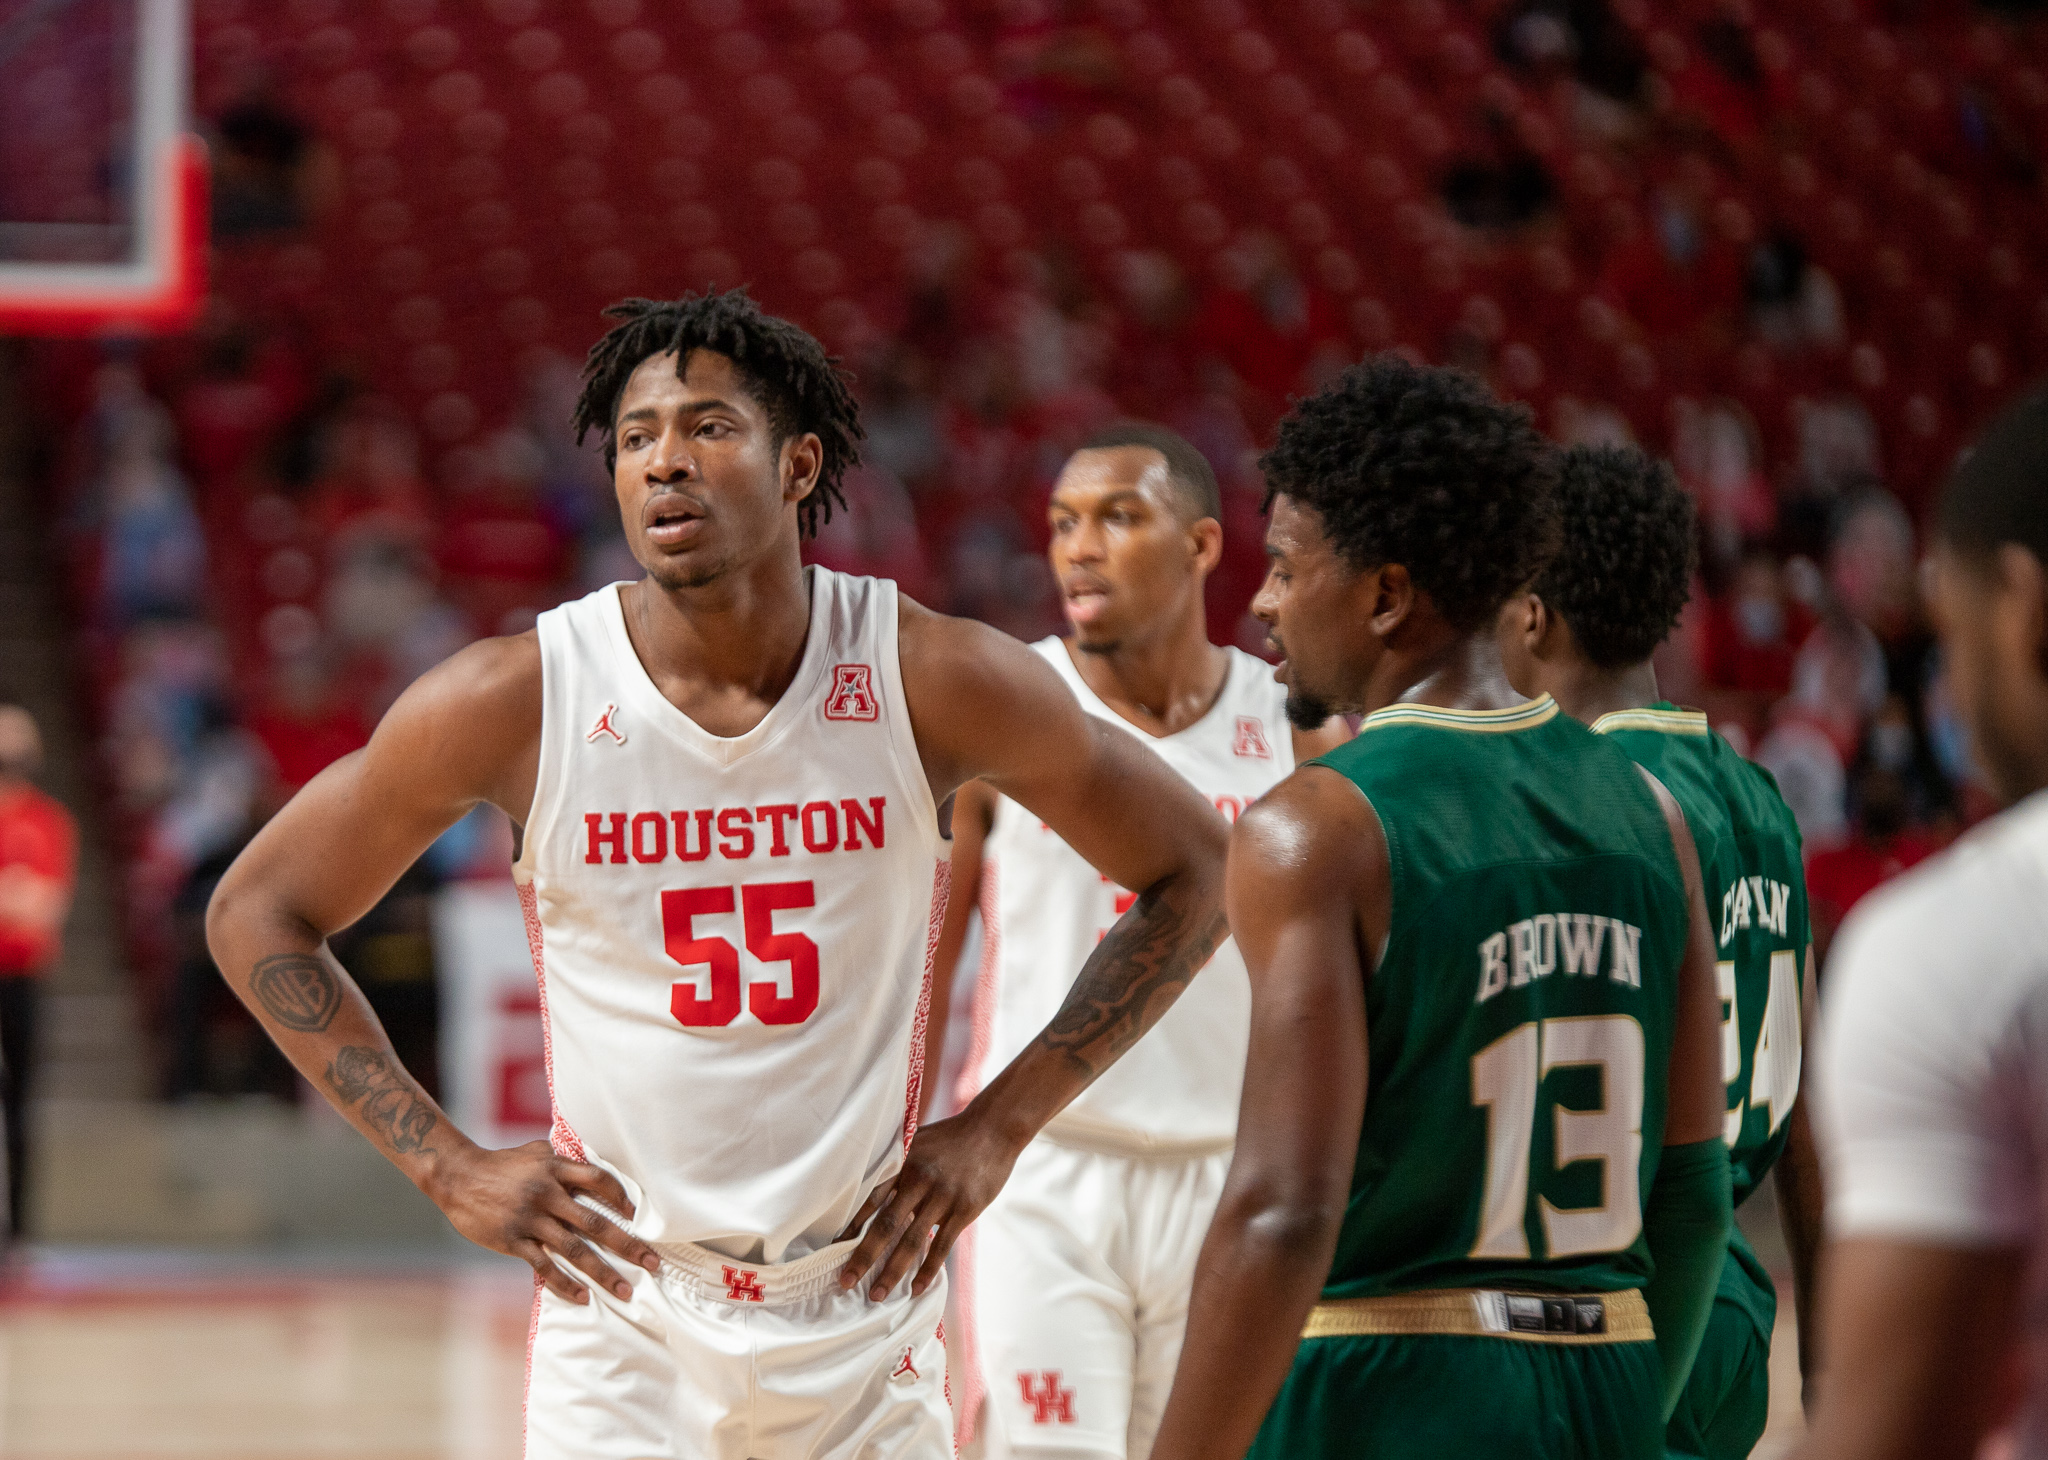 UH forward Brison Gresham played 99 games during his three years as a Cougar, playing an integral role in the program's success. | Andy Yanez/The Cougar